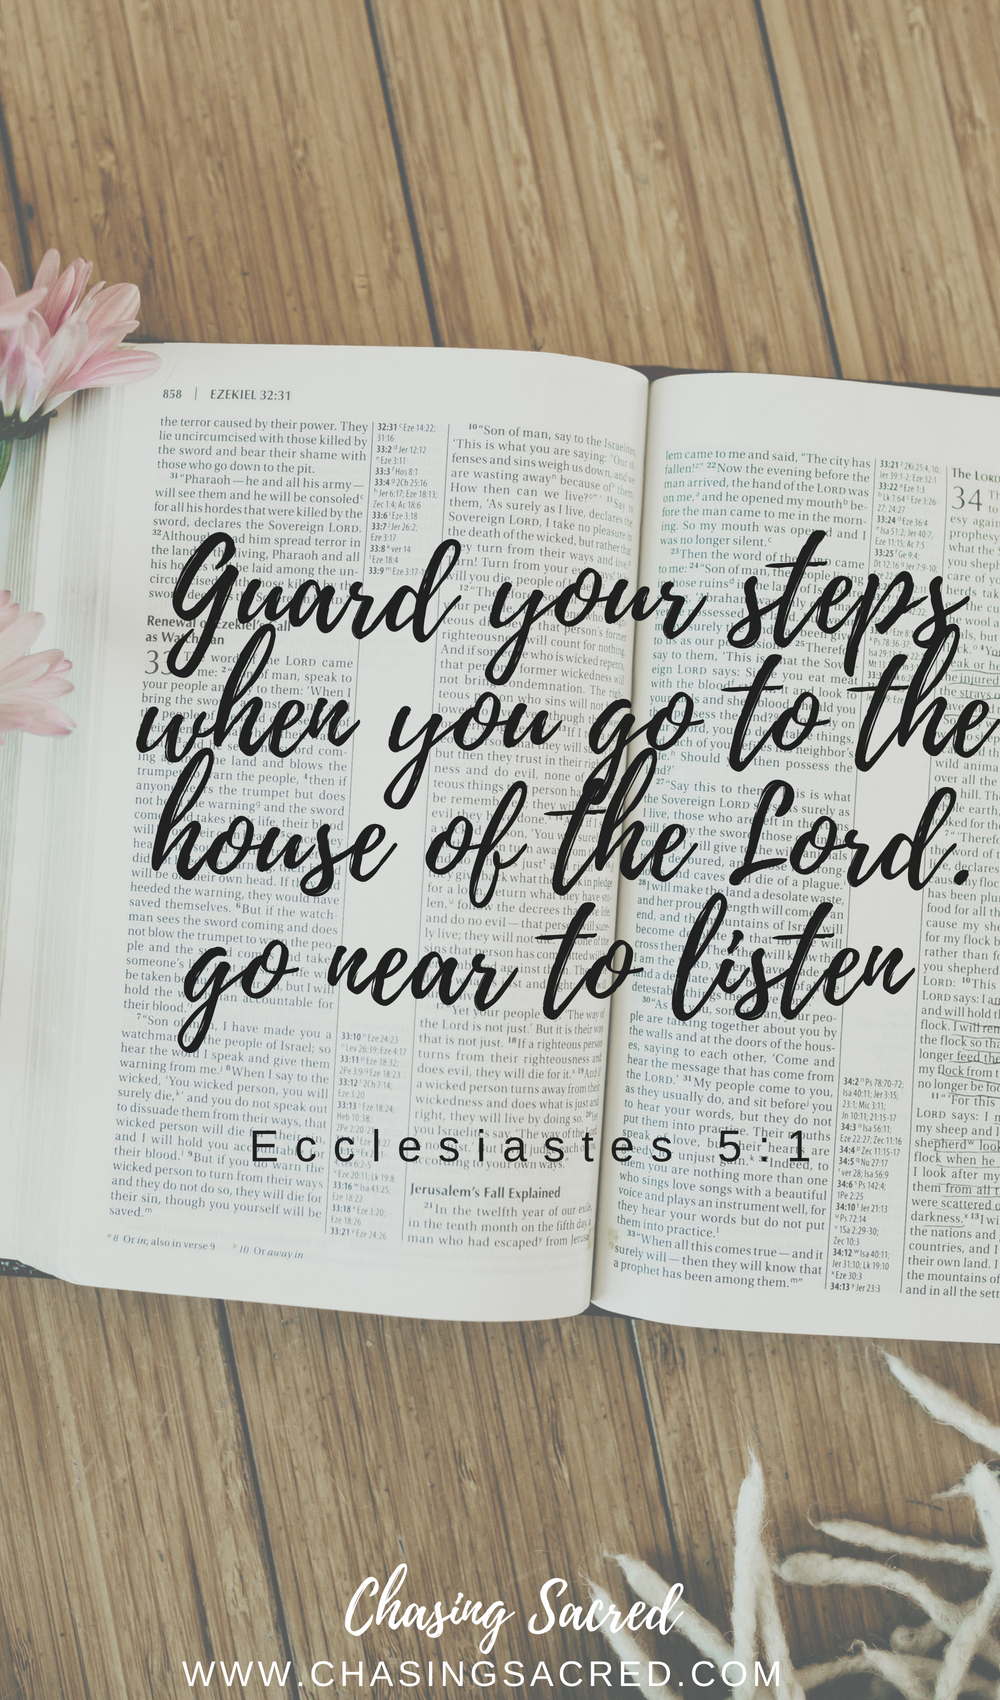 Guard your steps when you go to the house of the Lord. Go near to listen | Chasing Sacred